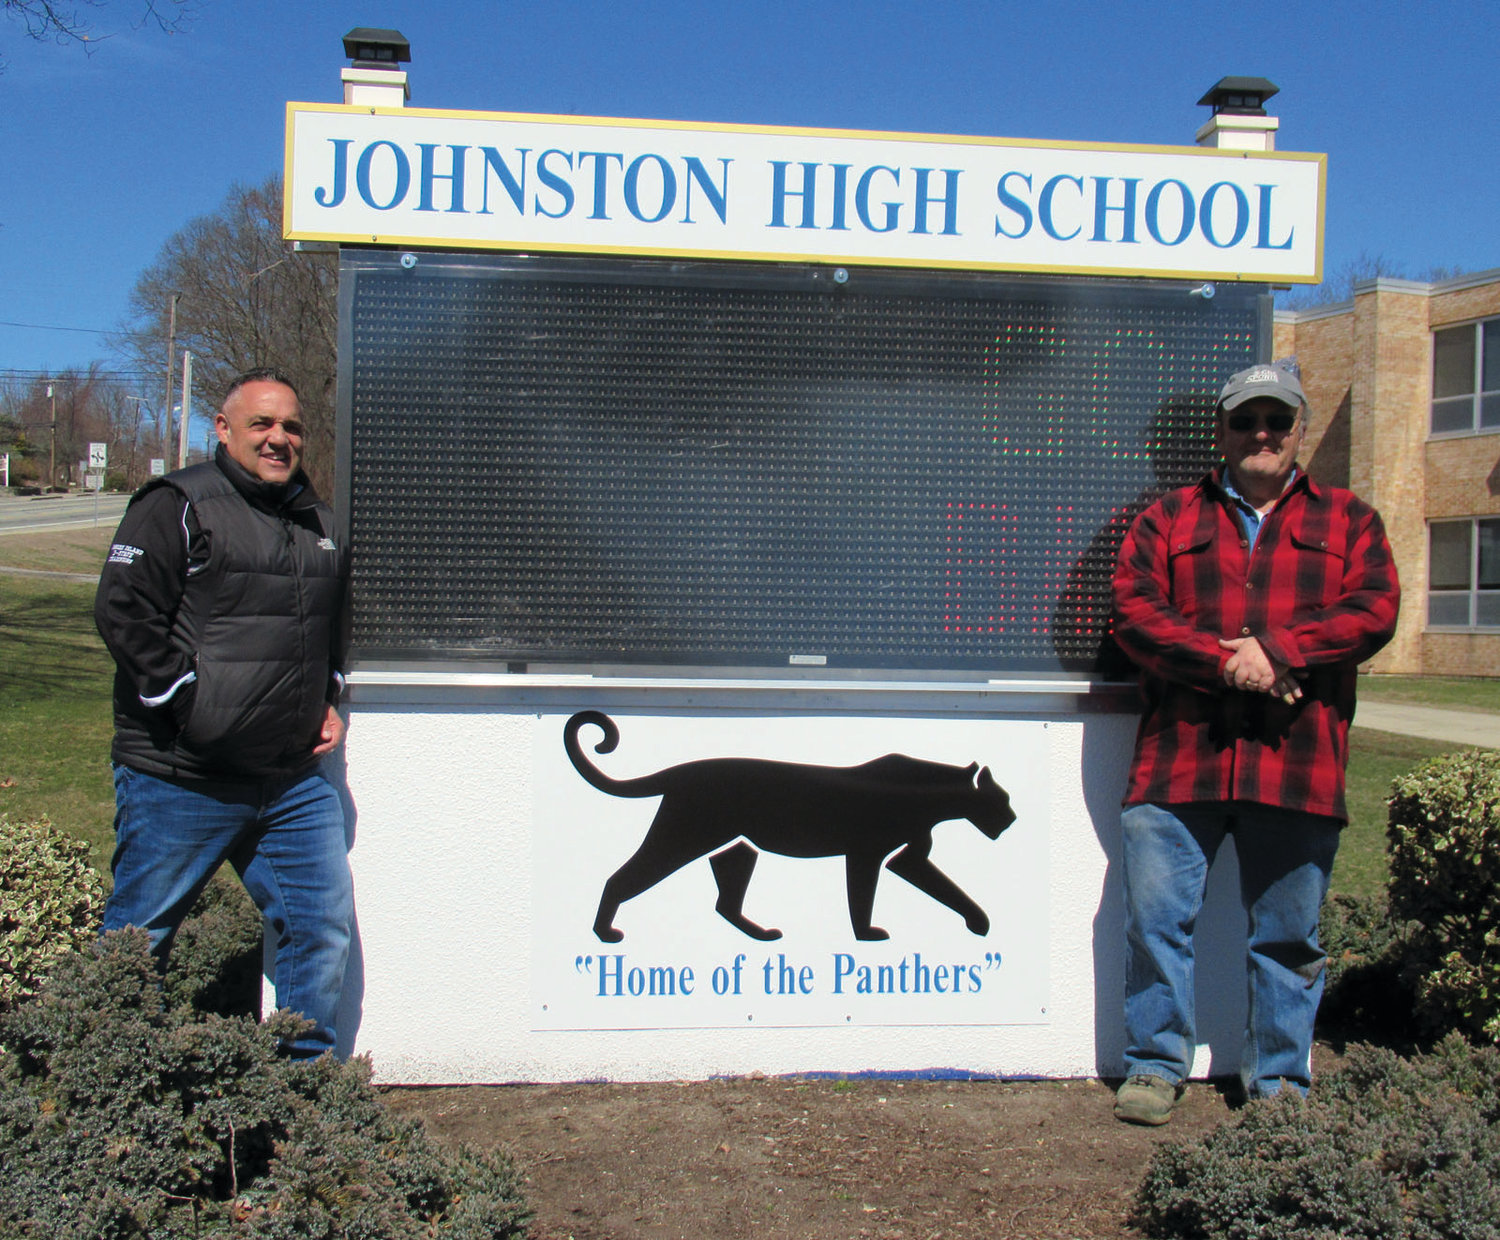 GRAND GIFT: Gary Salzillo, left, stands next to the digital sign he donated to Johnston High School. John Eramian, right, designed, constructed and donated the frame that surrounds the sign.